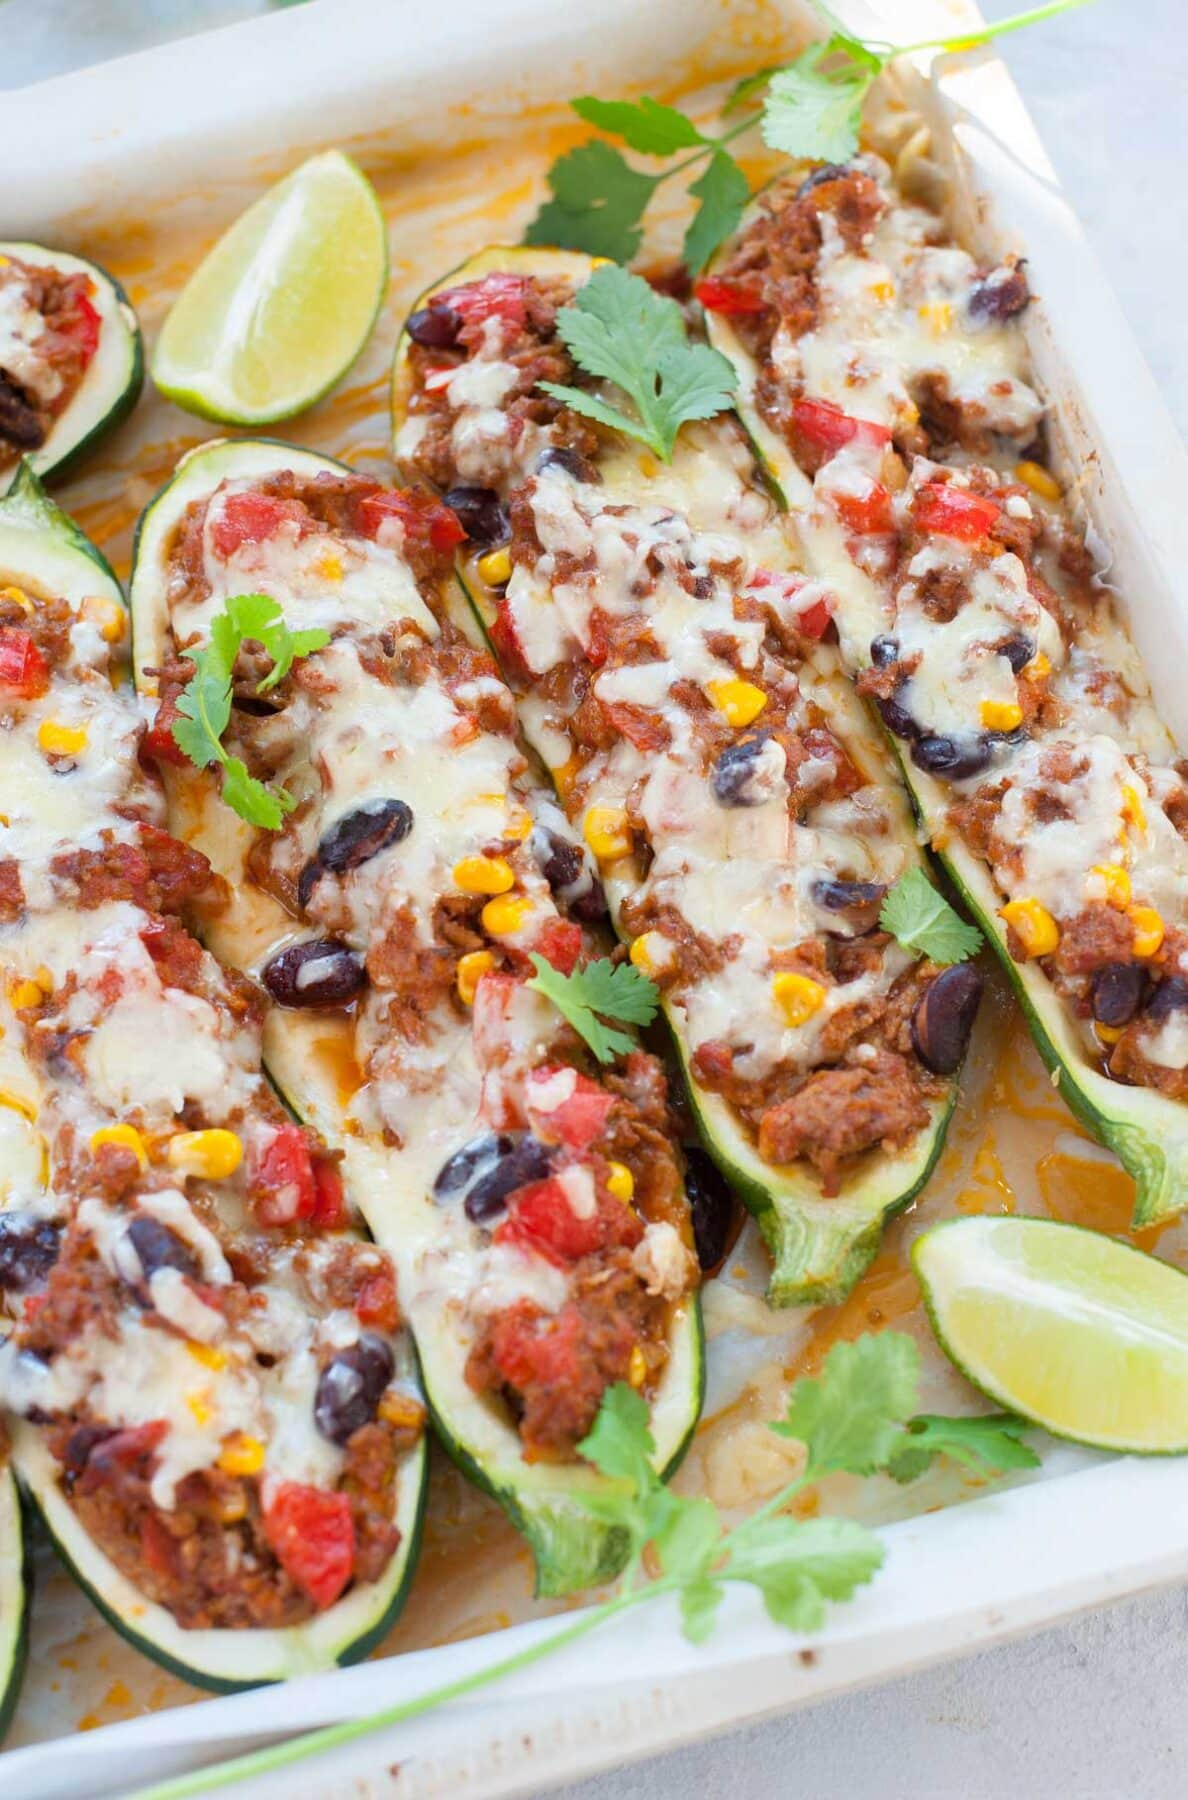 Mexican zucchini boats in a white baking pan topped with cilantro.